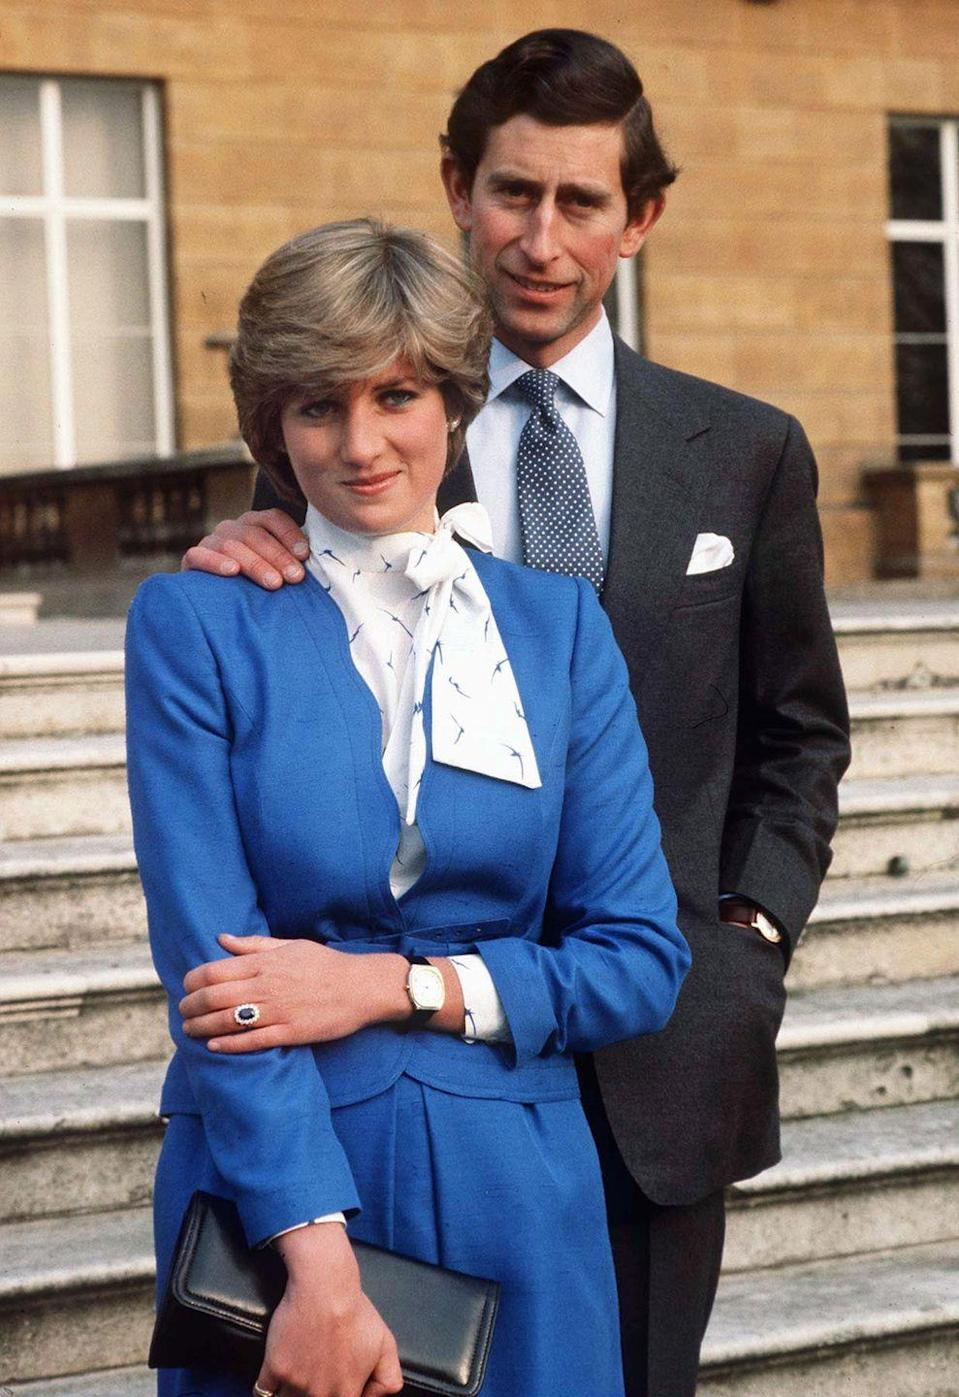 <p>The engagement ring of the century (yes, the same sapphire sparkler that Kate Middleton now wears) made its debut when Prince Charles and Lady Diana Spencer announced their engagement on the grounds outside of Buckingham Palace. </p>